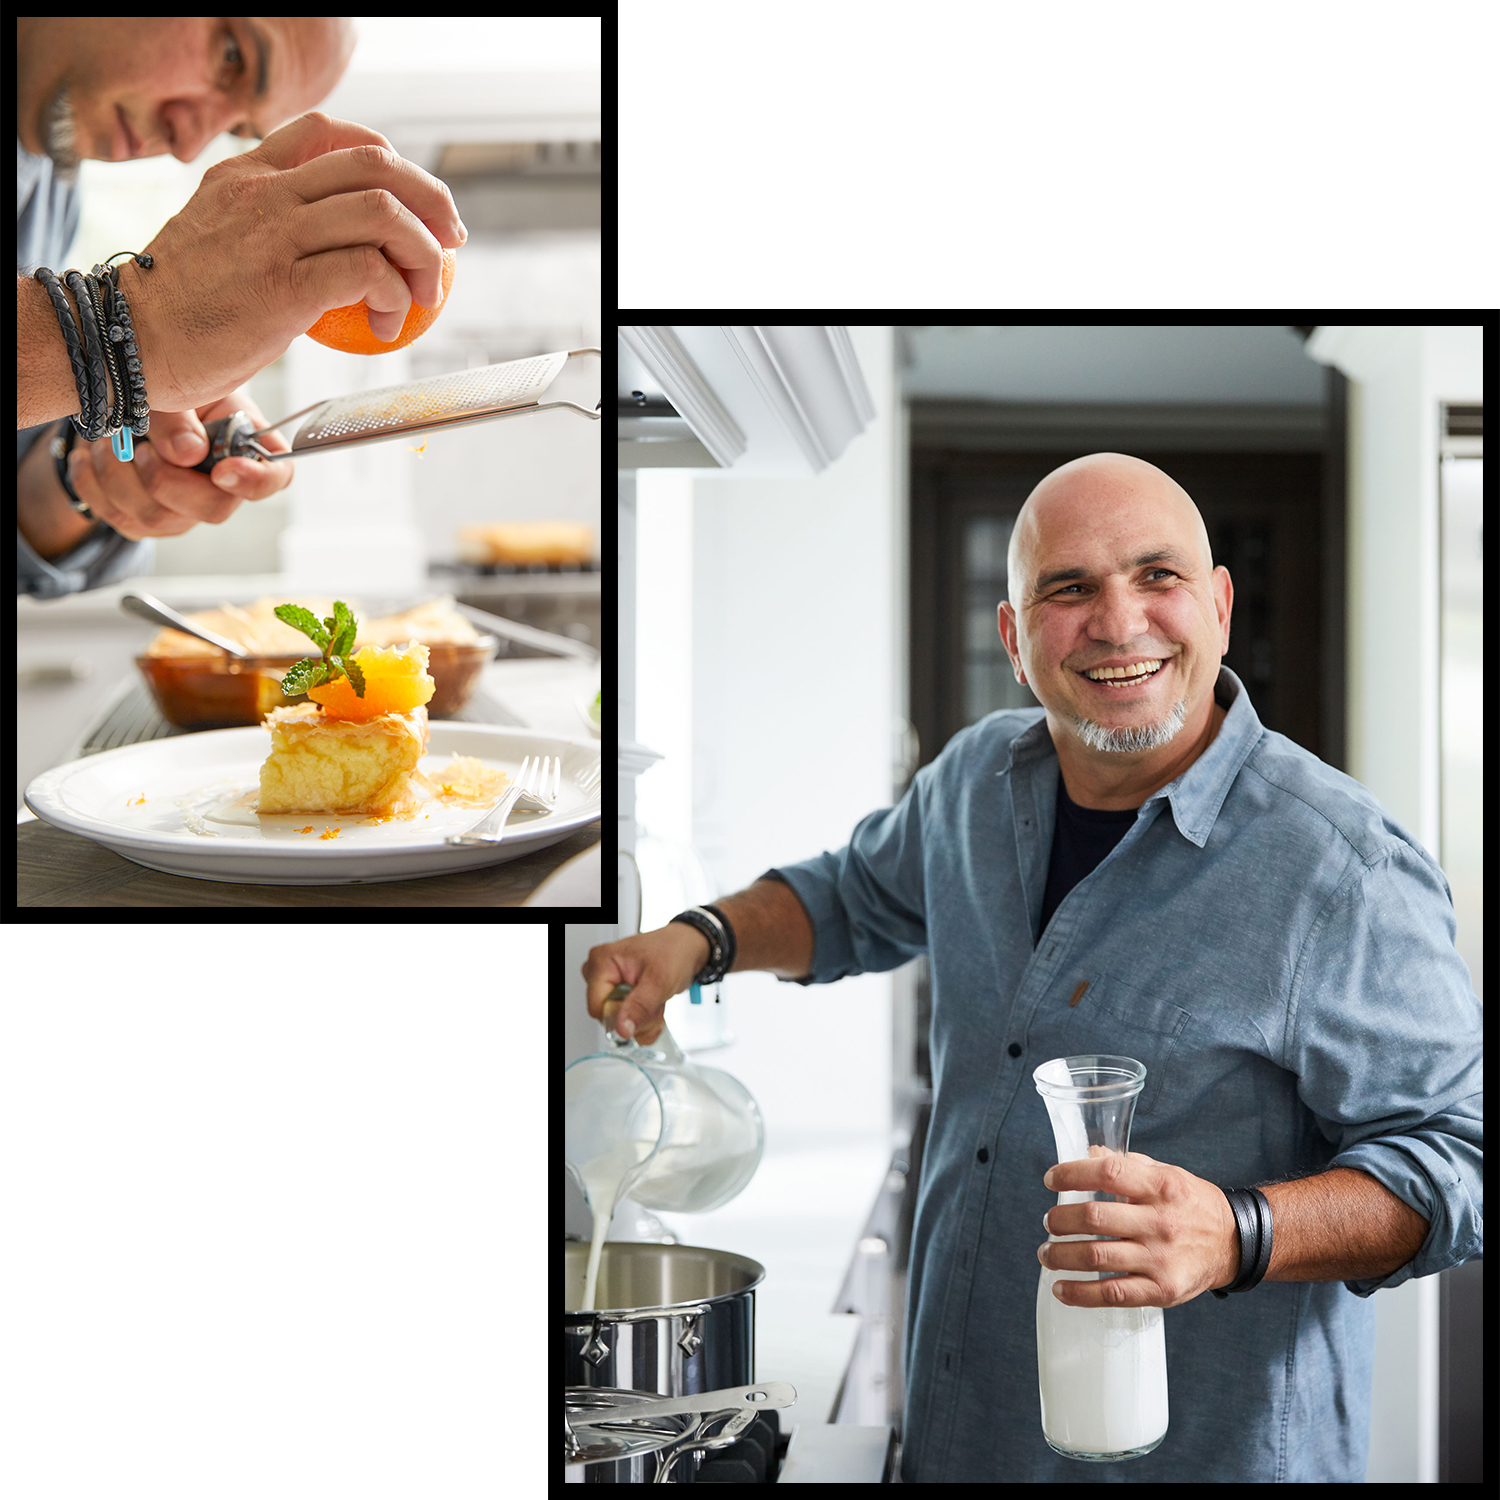 chef michael psilakis in kitchen